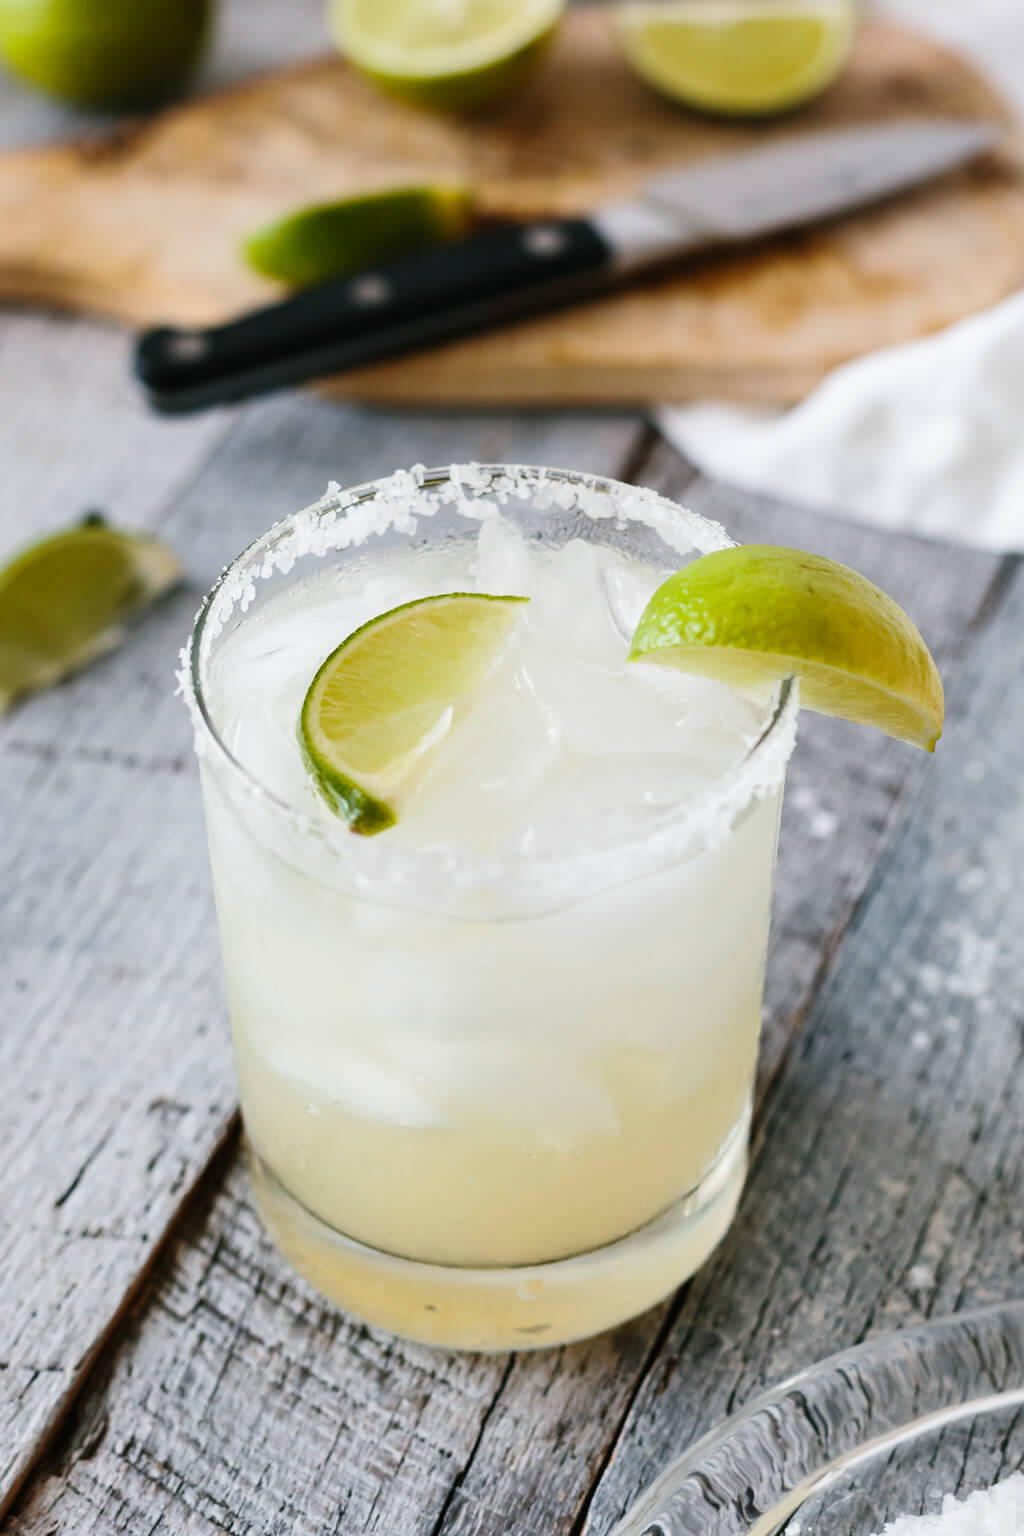 Margarita in a glass with limes on top and in the background.